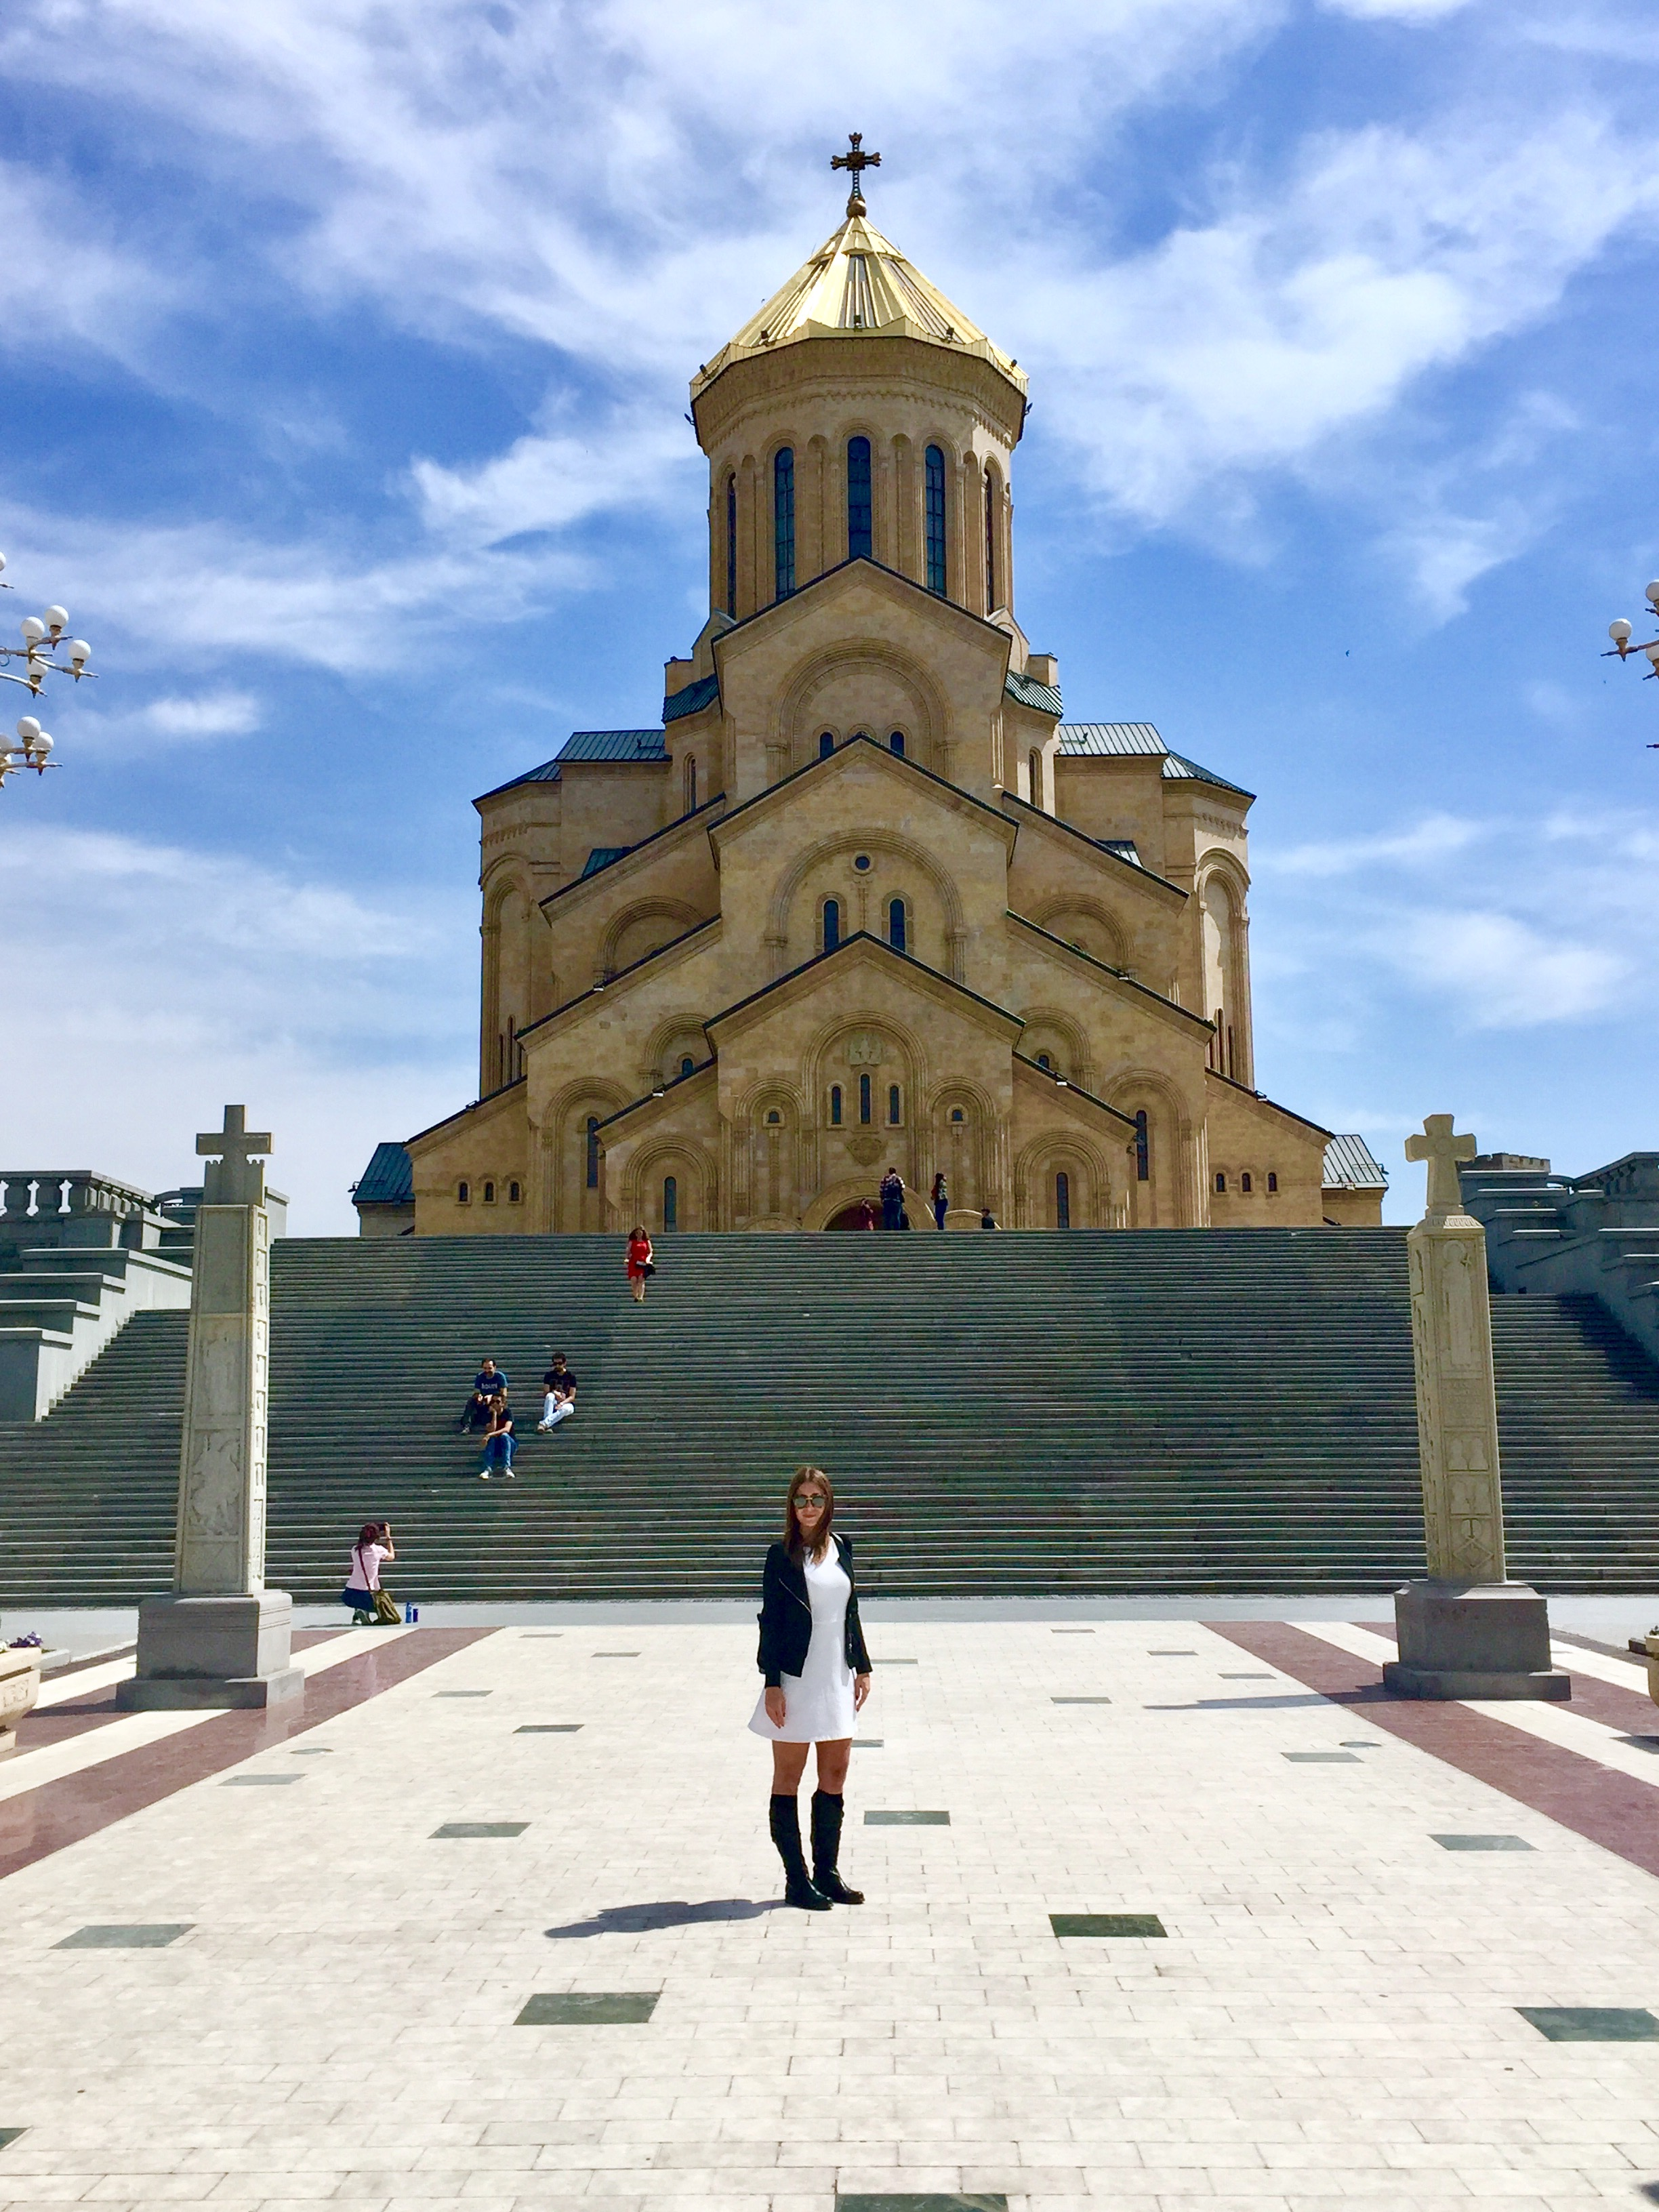 tbilisi_cathedral_georgia_lustforthesublime